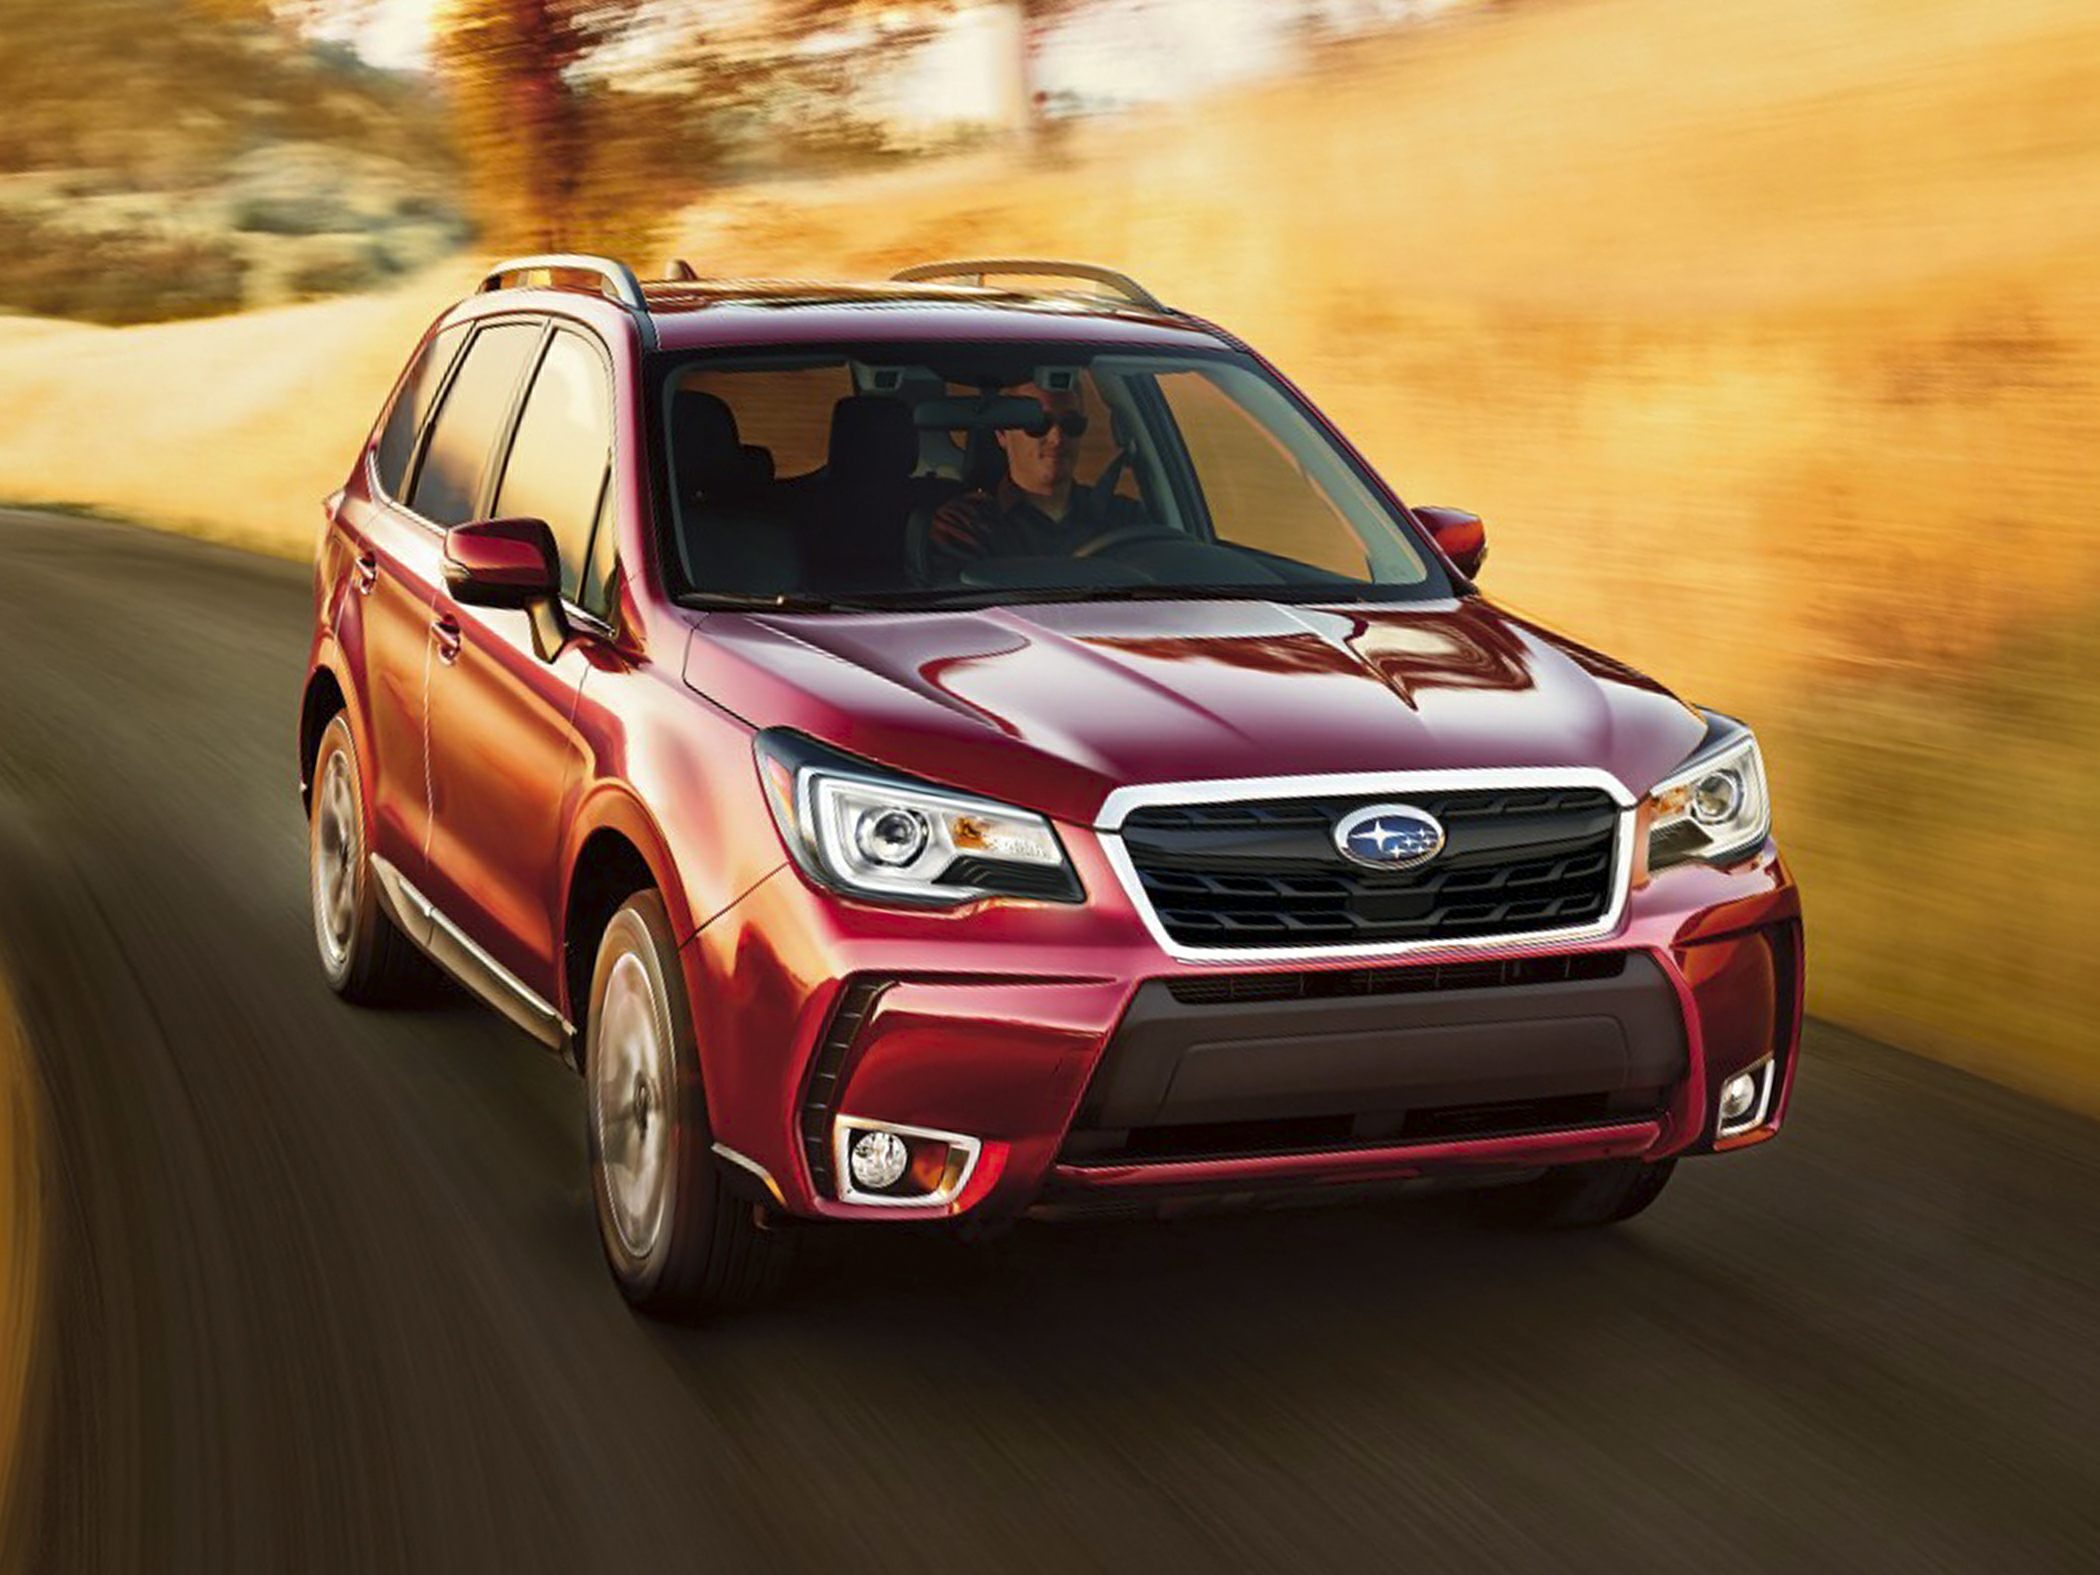 Foresters Quick Quote Foresters Quick Quote Awesome 2011 Subaru Forester 2.5X 4Dr